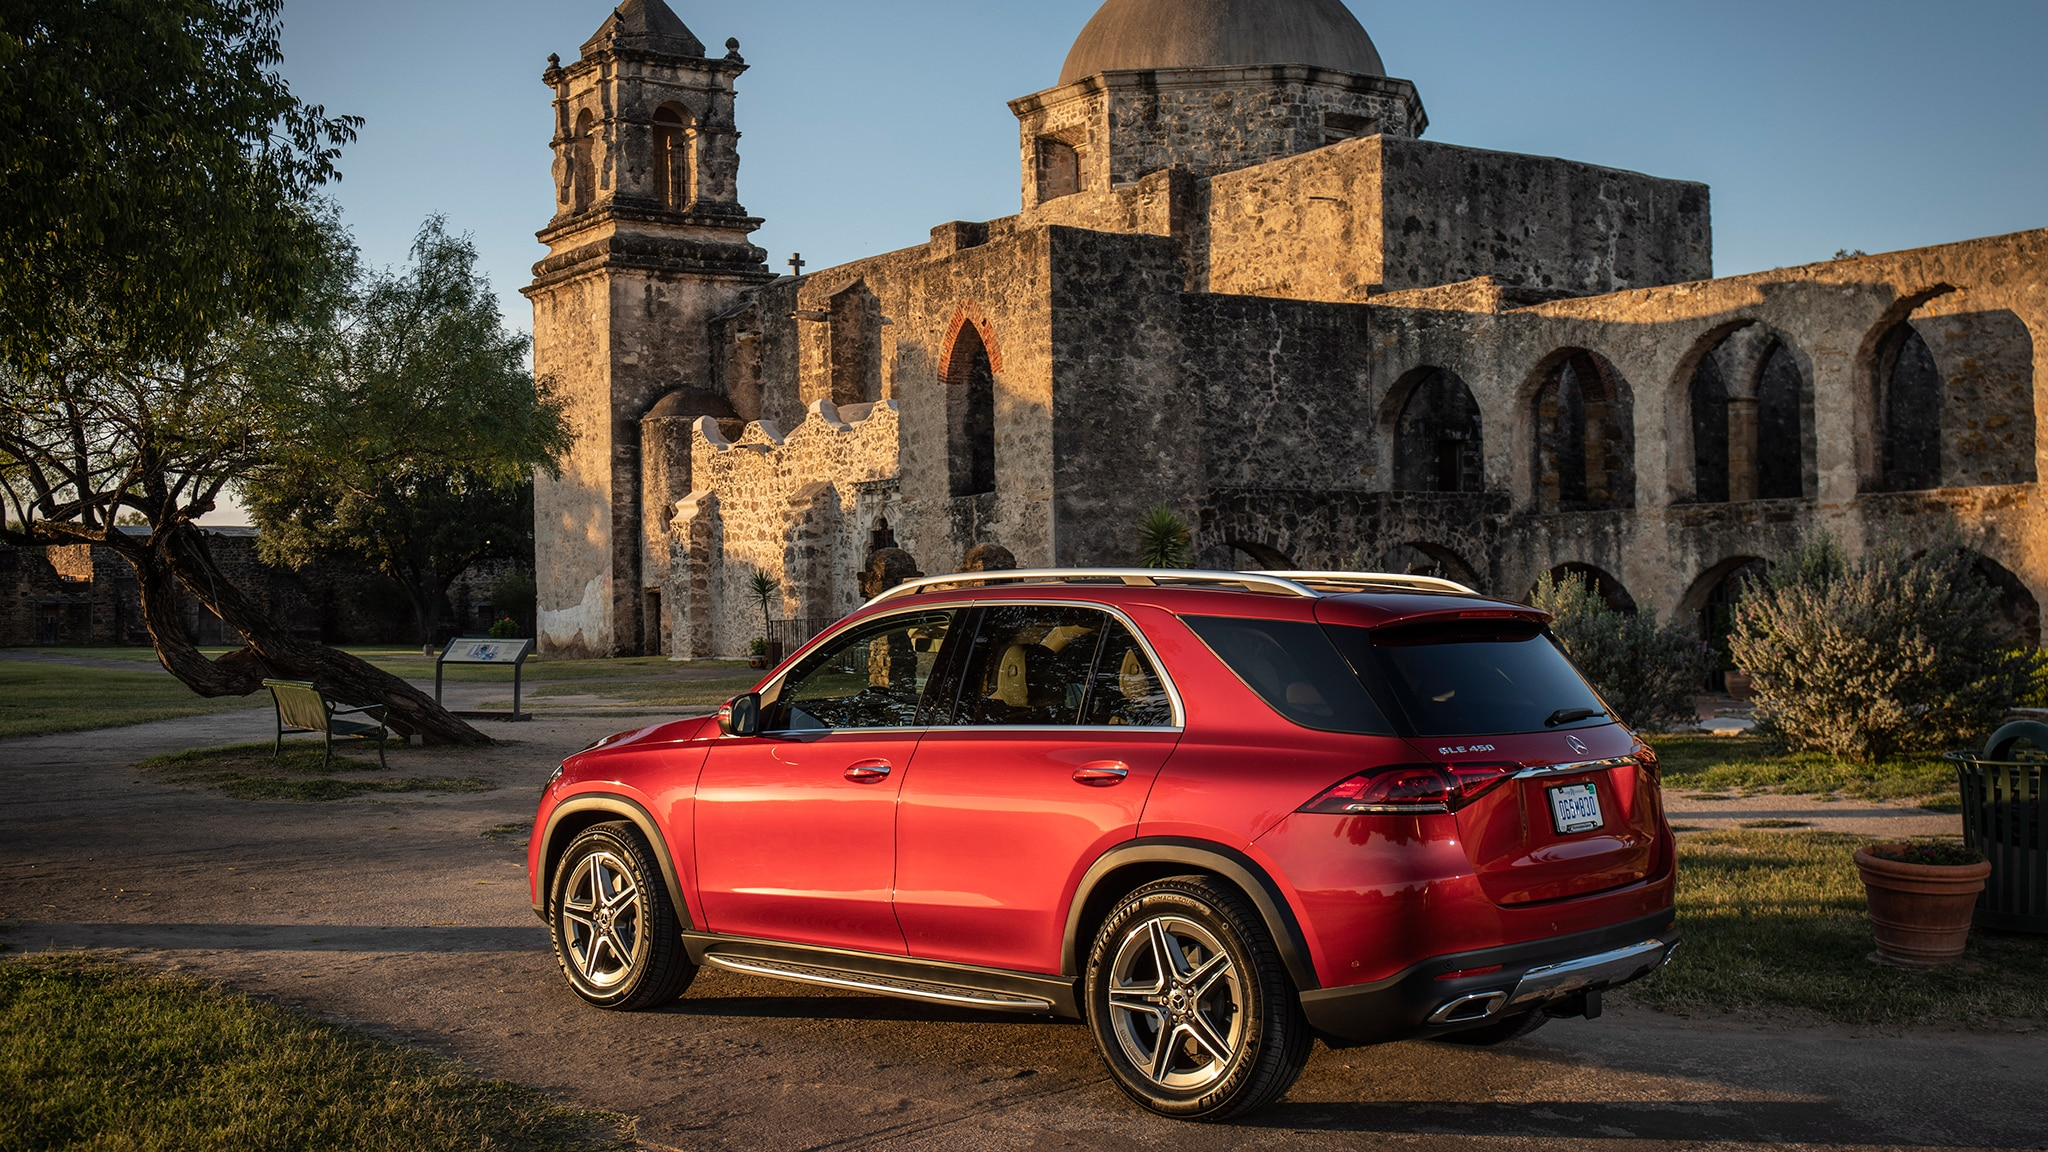 2020 Mercedes Benz GLE First Drive Review